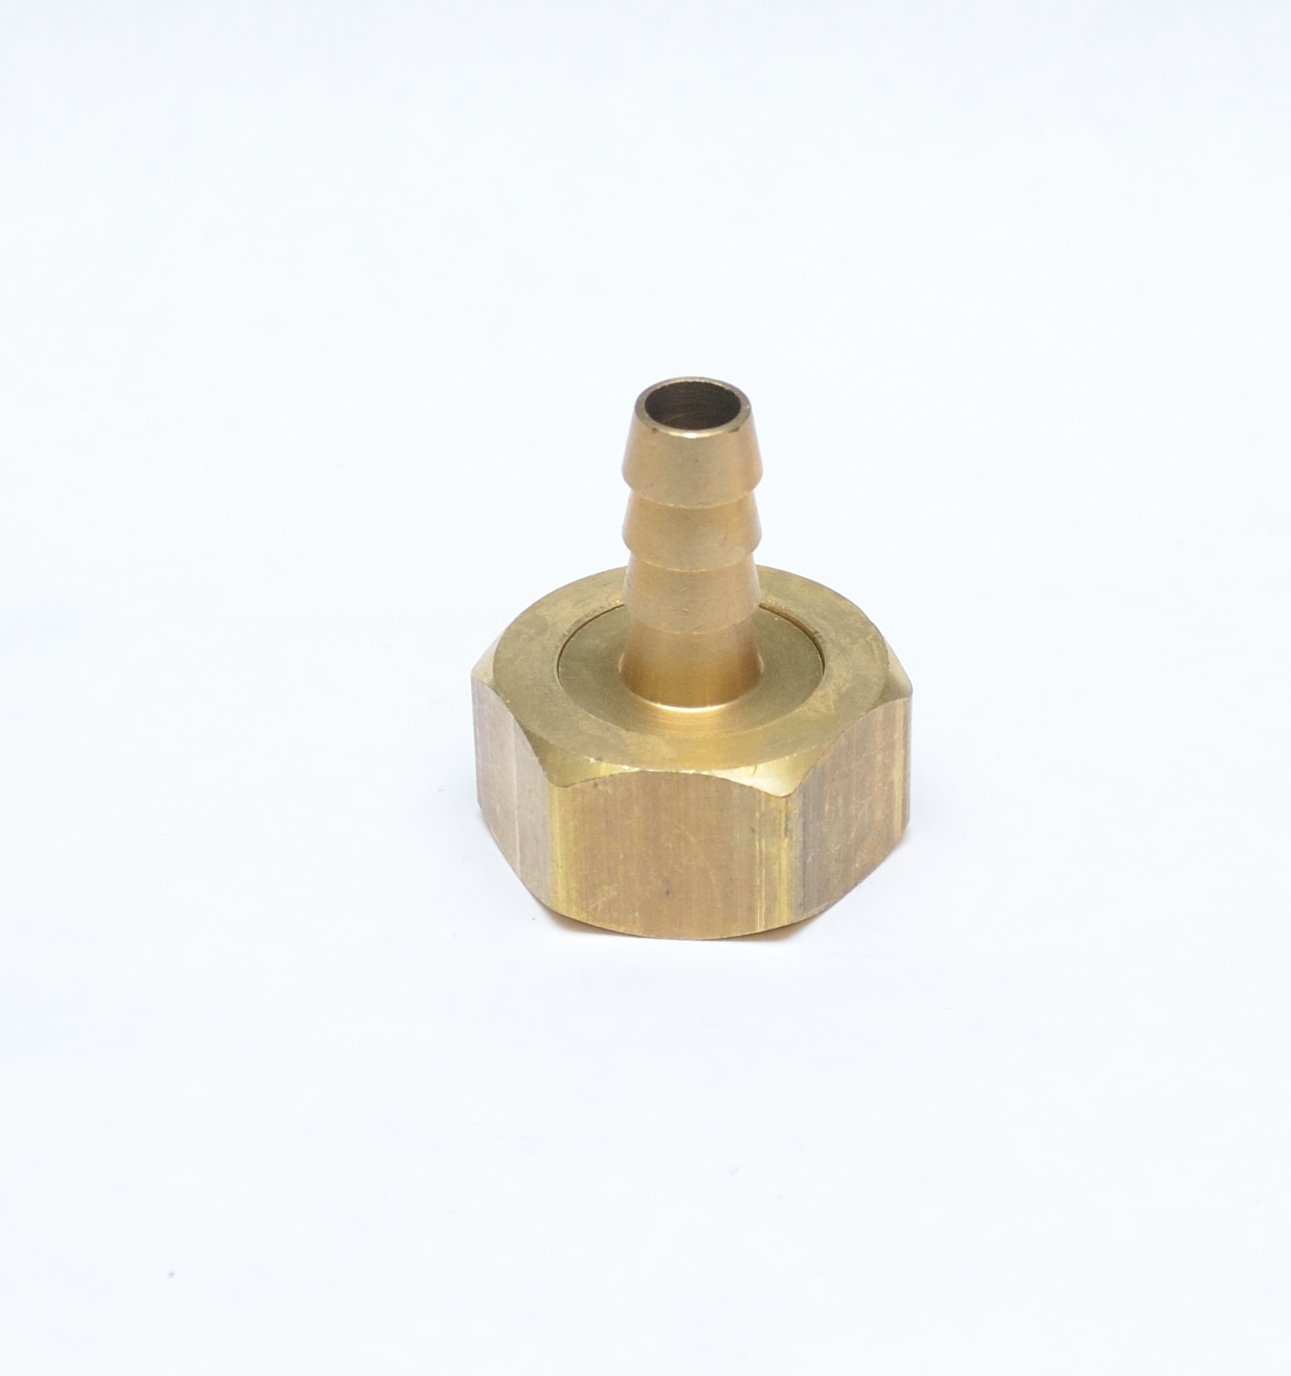 "FASPARTS 3/8"" Hose ID/Hose Barb to 3/4"" Female GHT Garden Hose Thread Straight Brass Swivel Fitting House/Boat/Lawn/Power Wash/Irrigation"